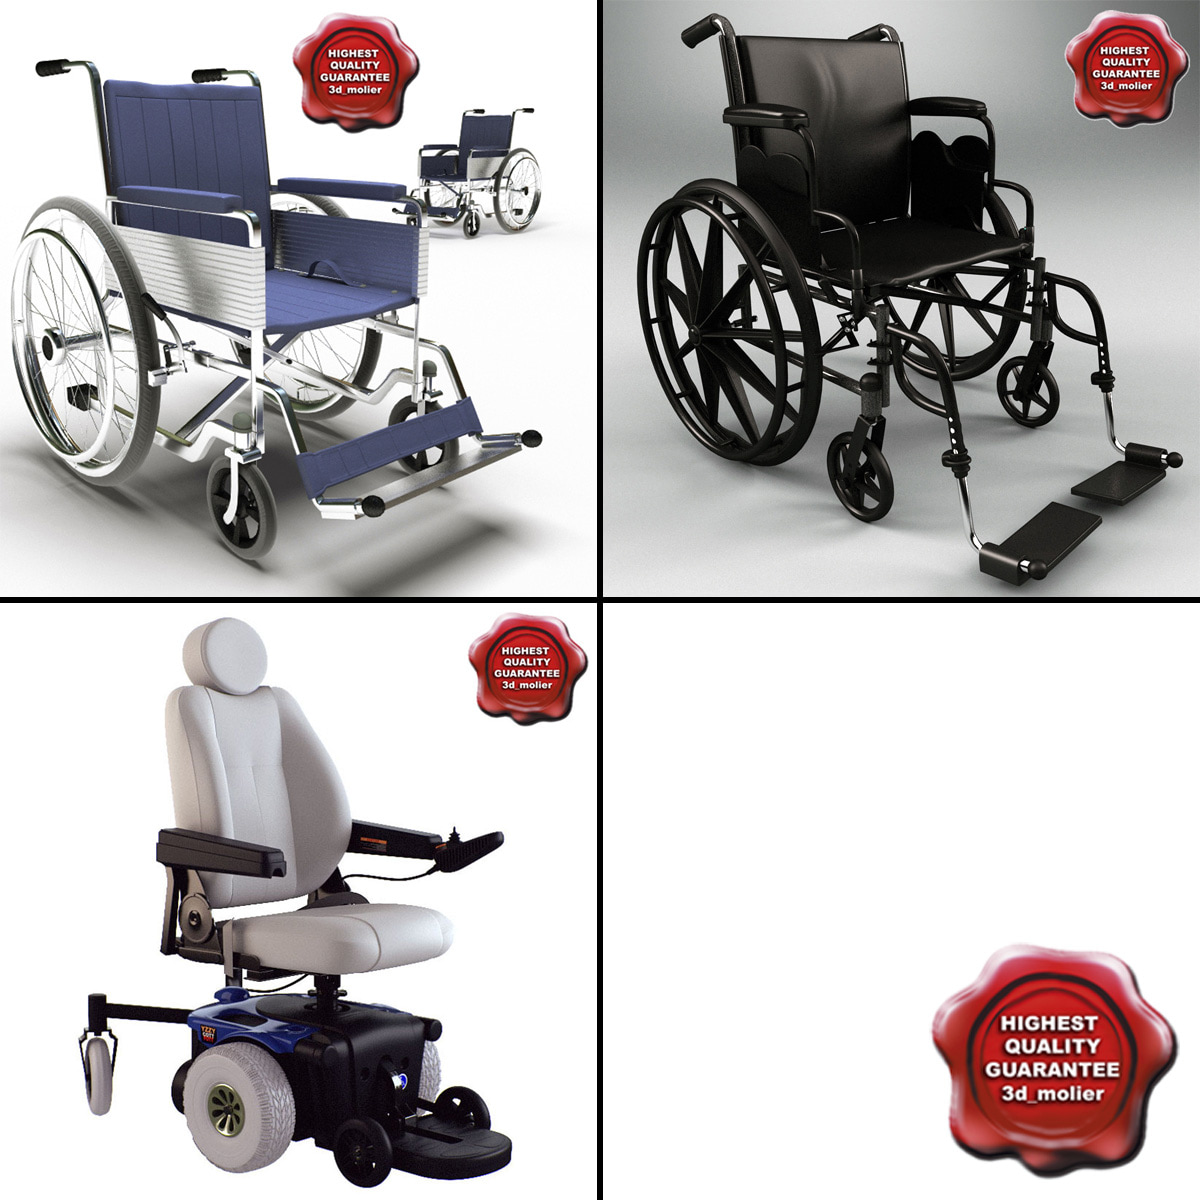 Wheelchairs_Collection_V2_00.jpg